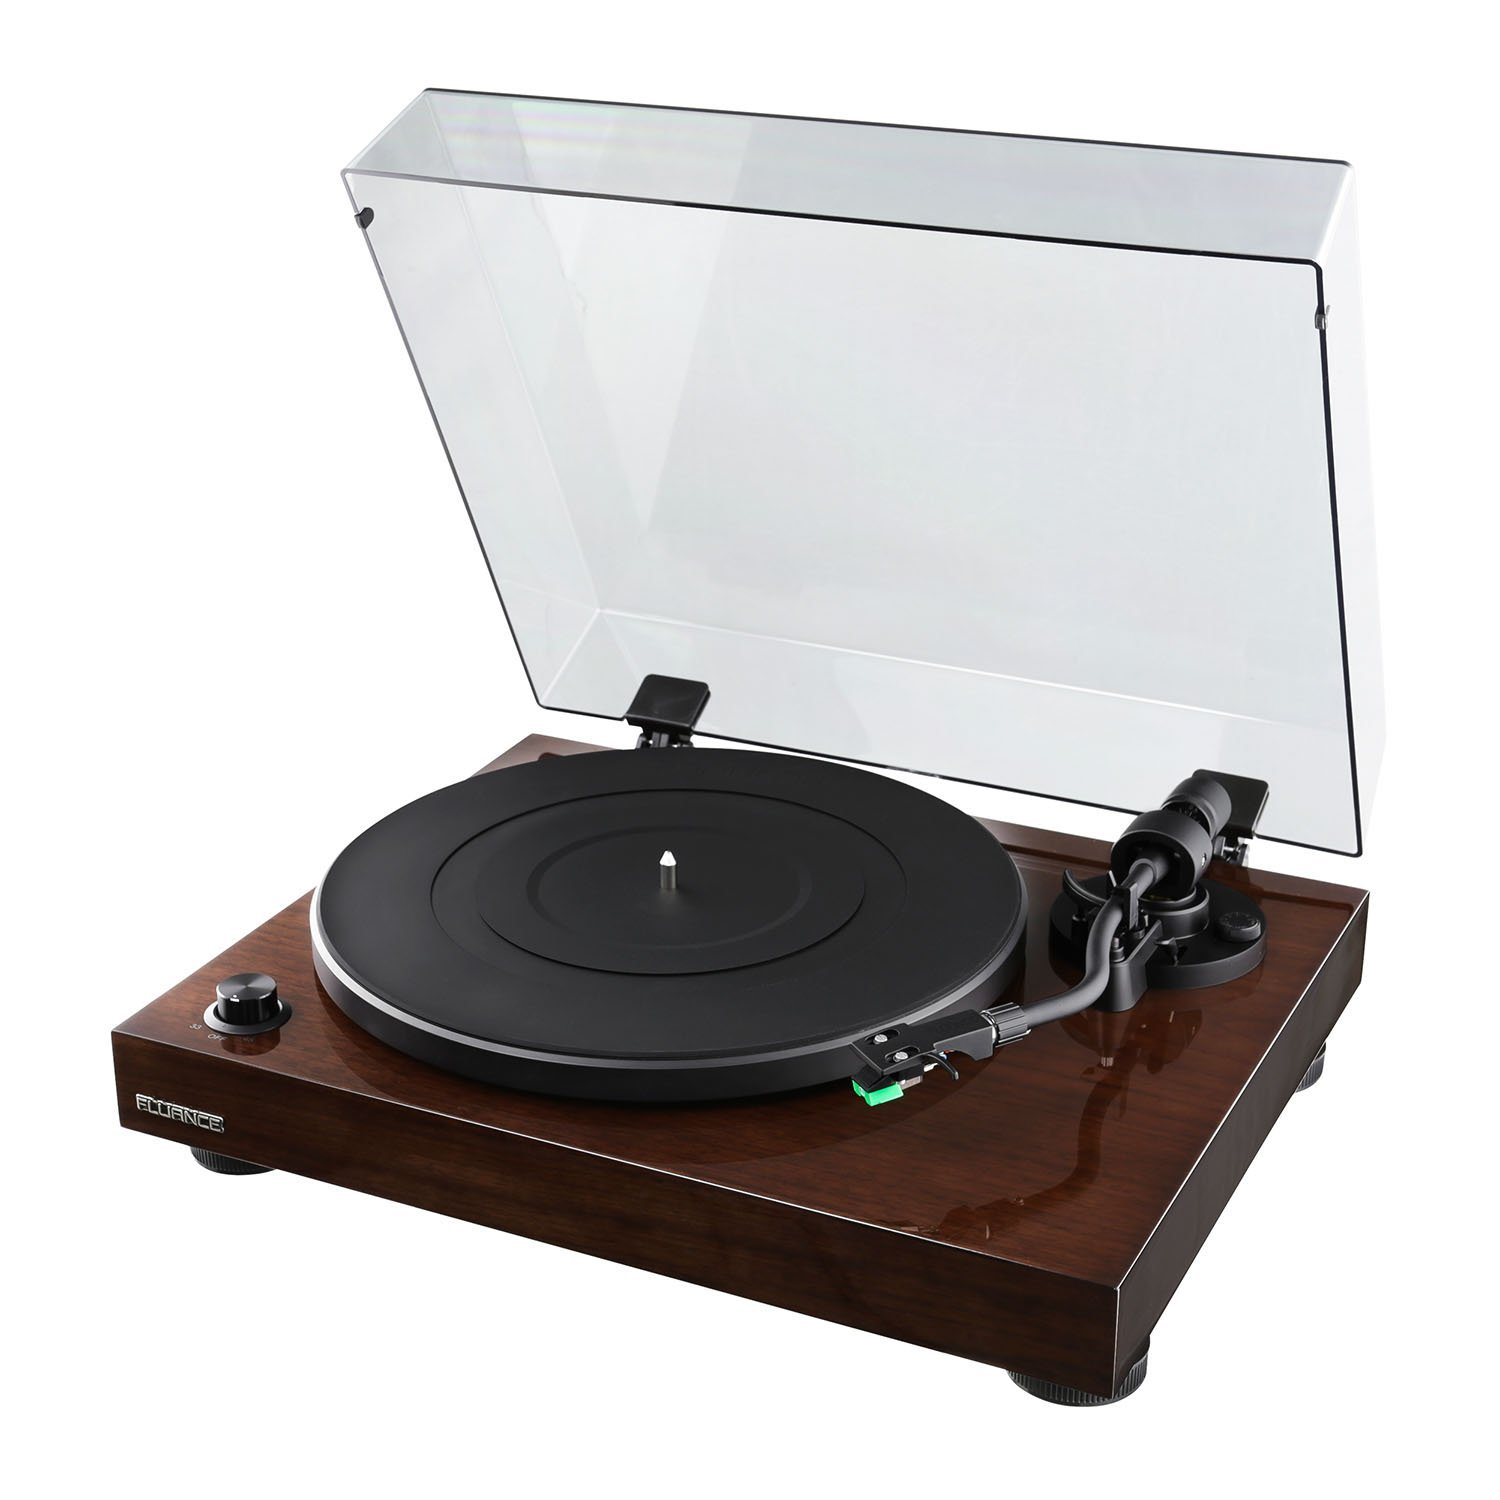 Fluance RT81 Elite High Fidelity Vinyl Turntable Record Player with Audio Technica AT95E Cartridge, Belt Drive, Built-in Preamp, Adjustable Counterweight, Solid Wood Plinth - Walnut by Fluance